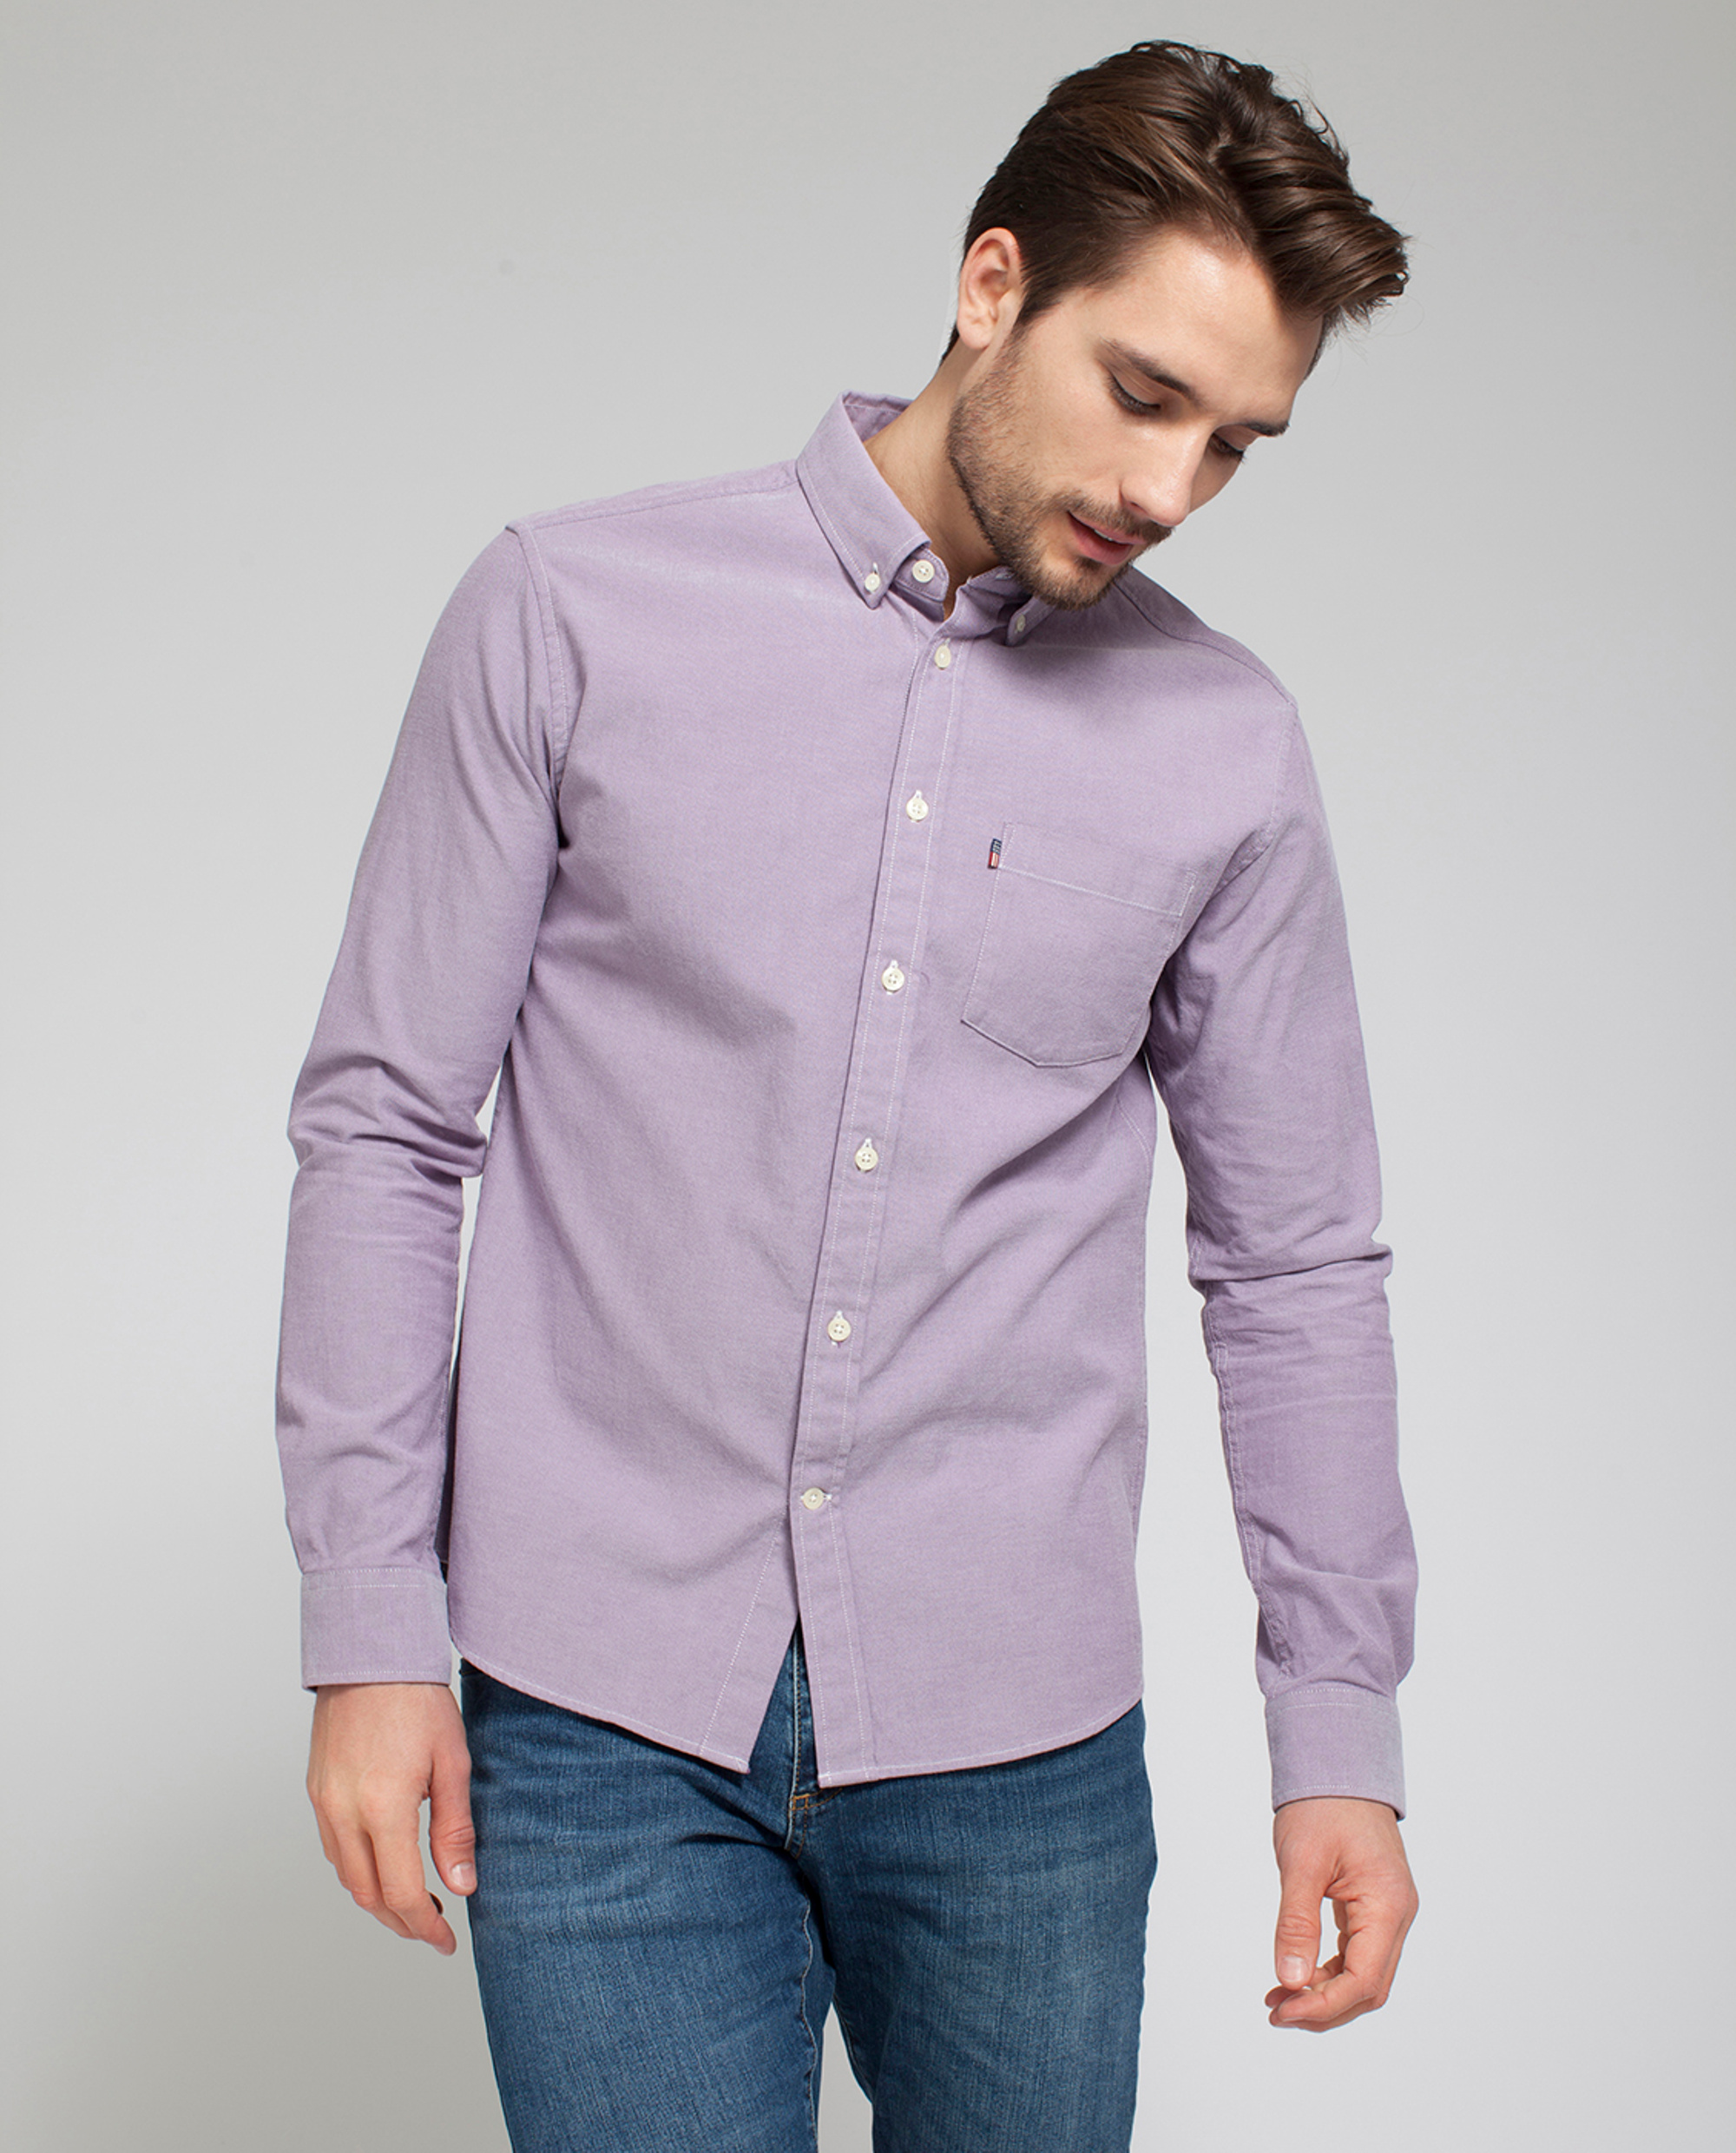 Kyle Oxford Shirt, Grape Jam